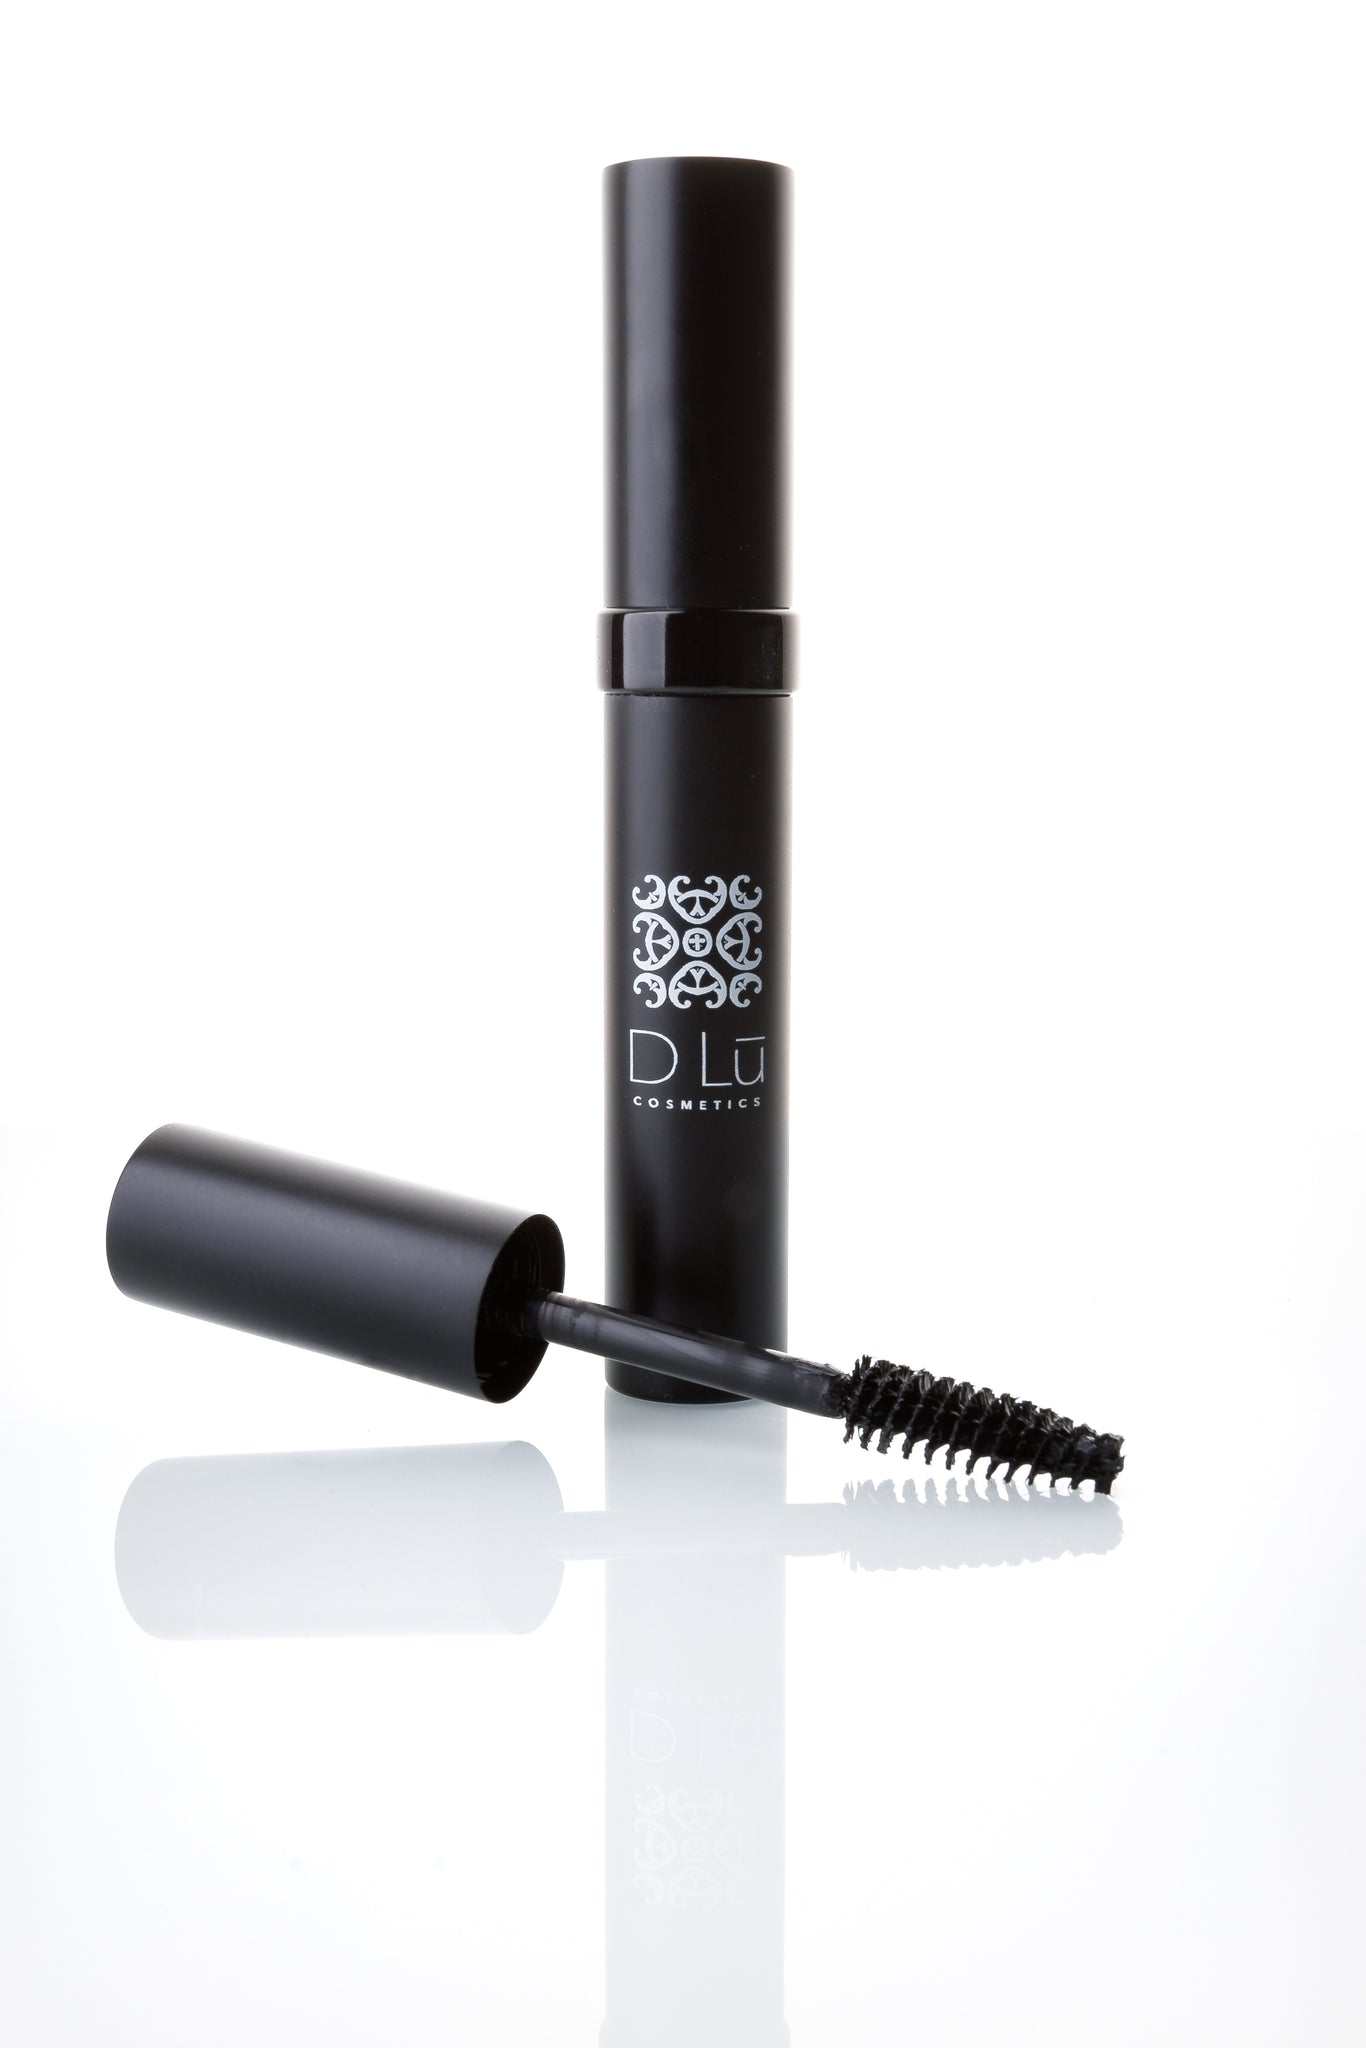 DLu Royale Mascara - Clear Eyebrow and Lash